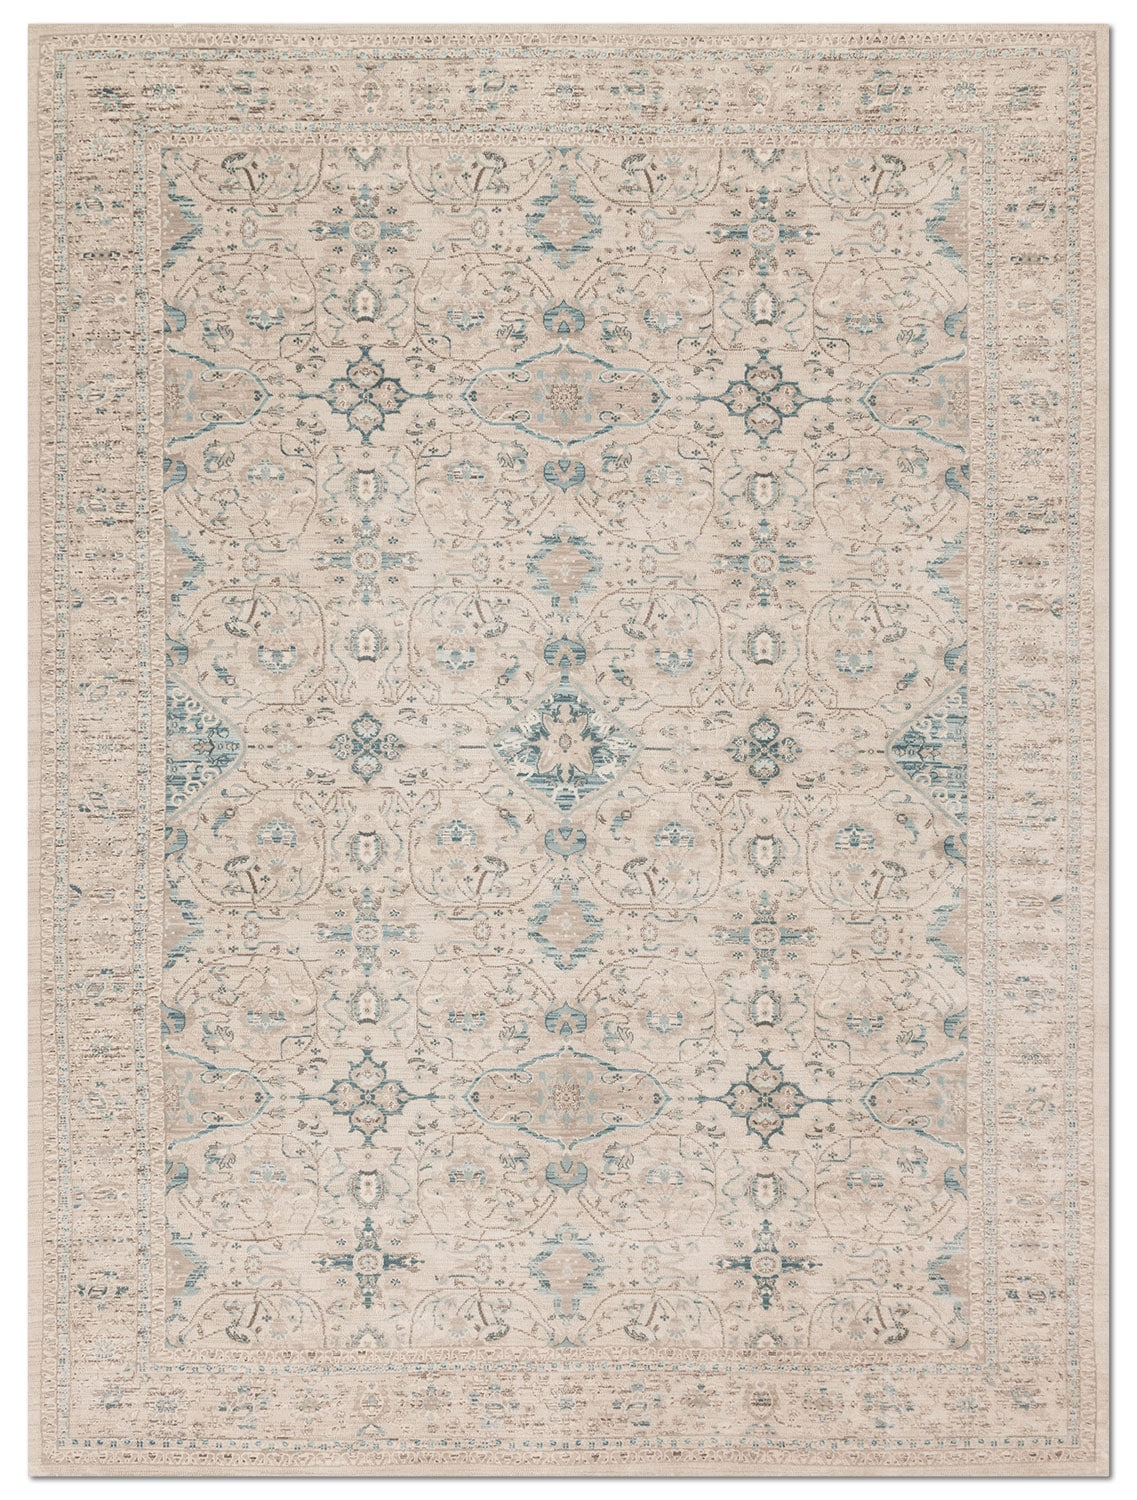 Rugs - Ella Rose 13' x 18' Rug - Bone